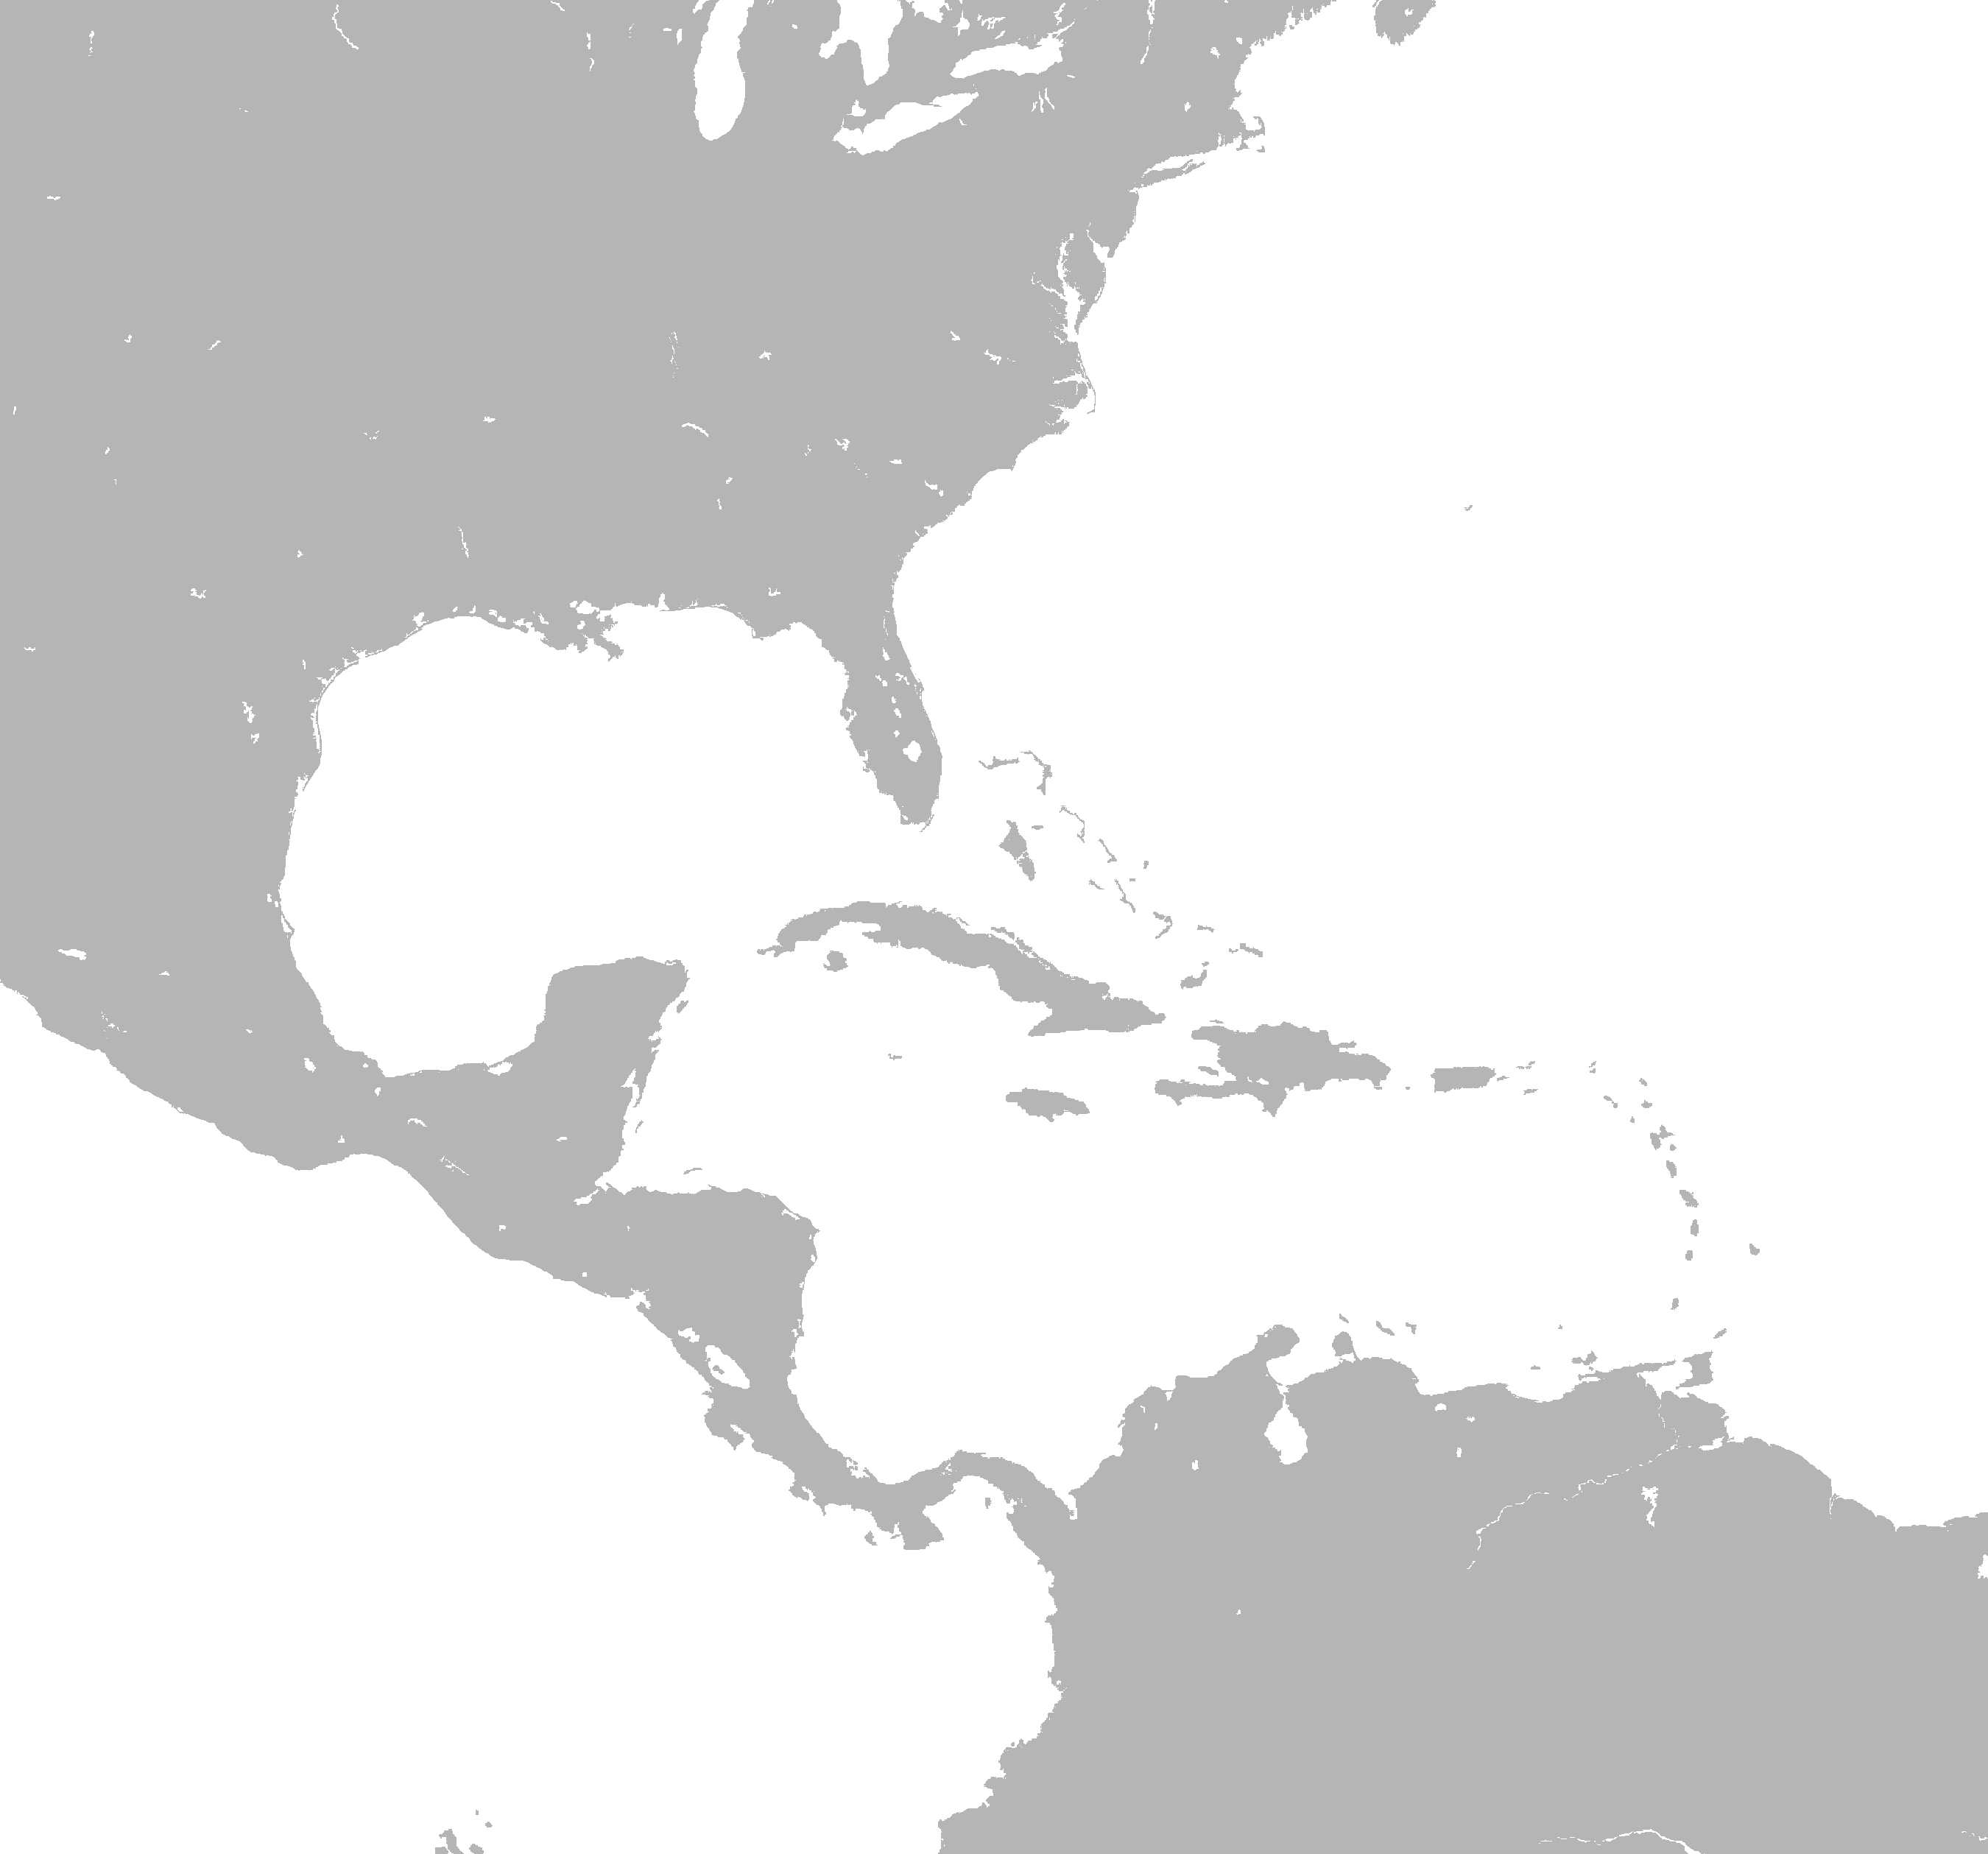 File:Caribbean map blank.png - Wikipedia